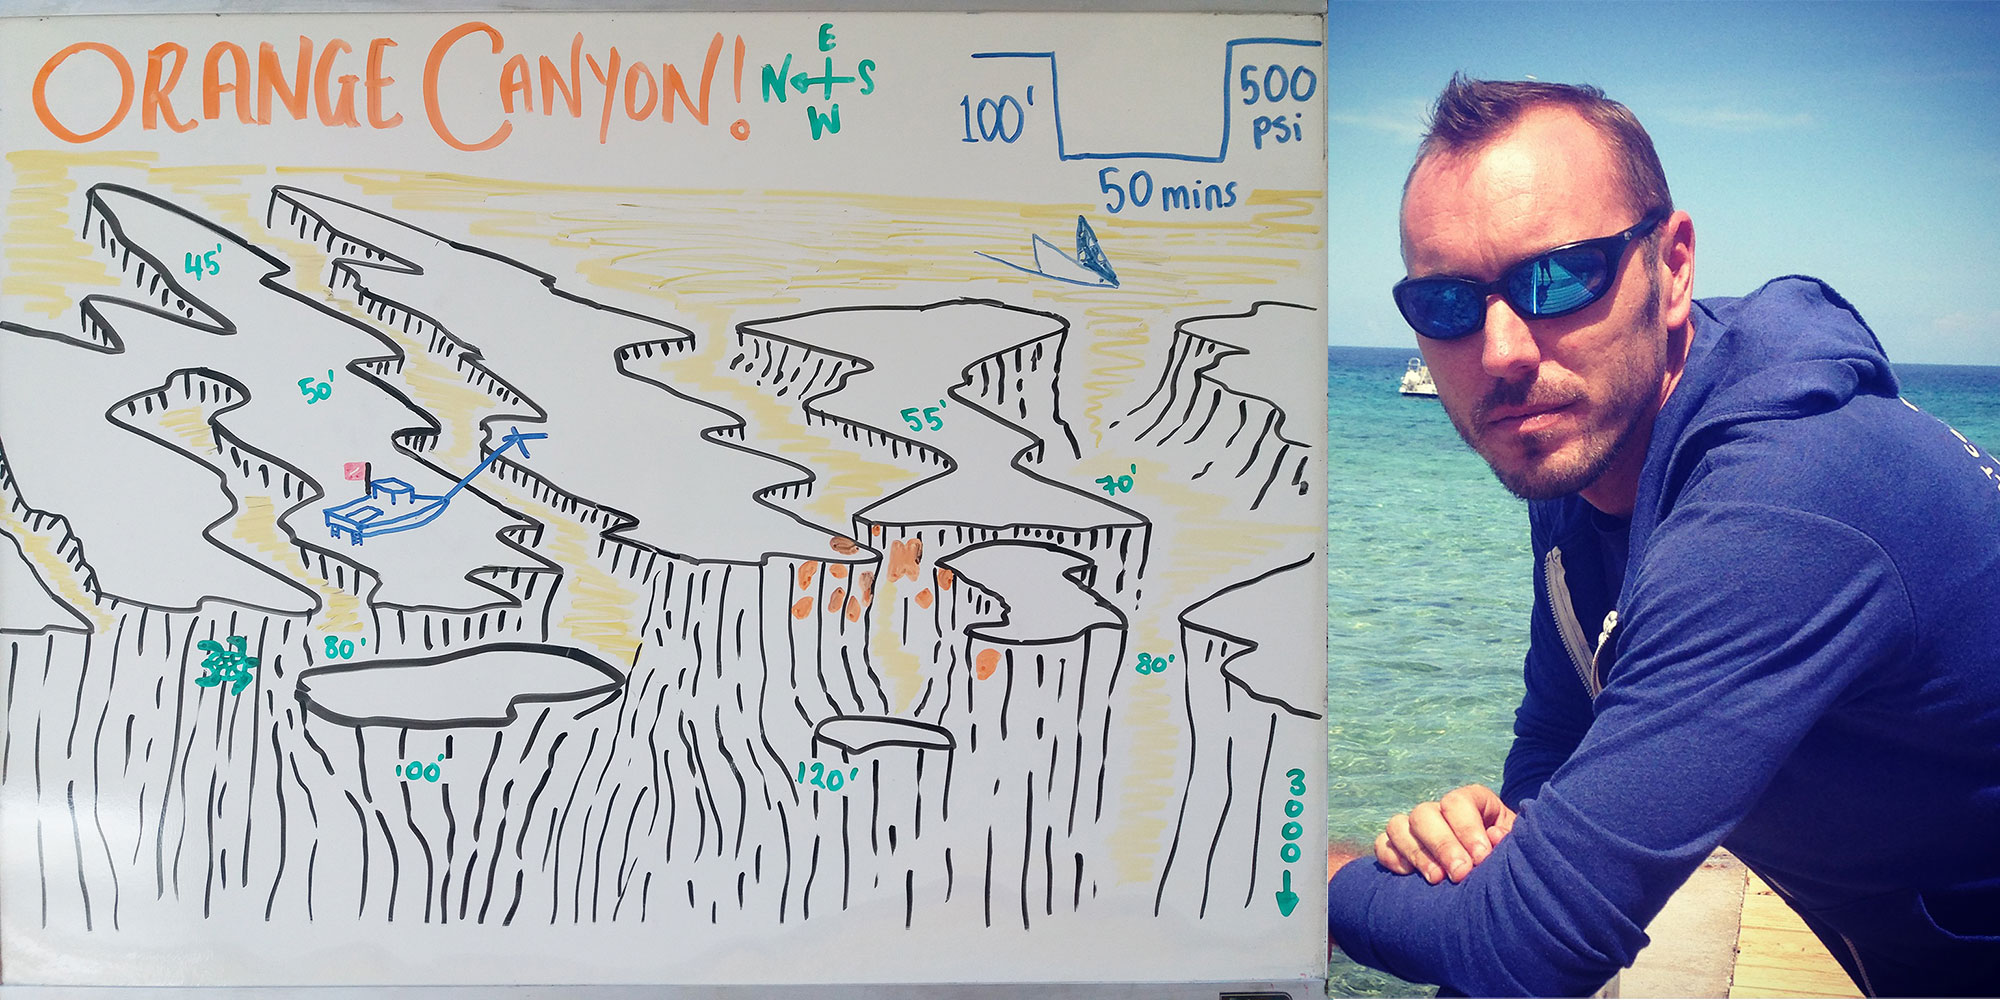 Clearly Cayman Dive Log – Orange Canyon